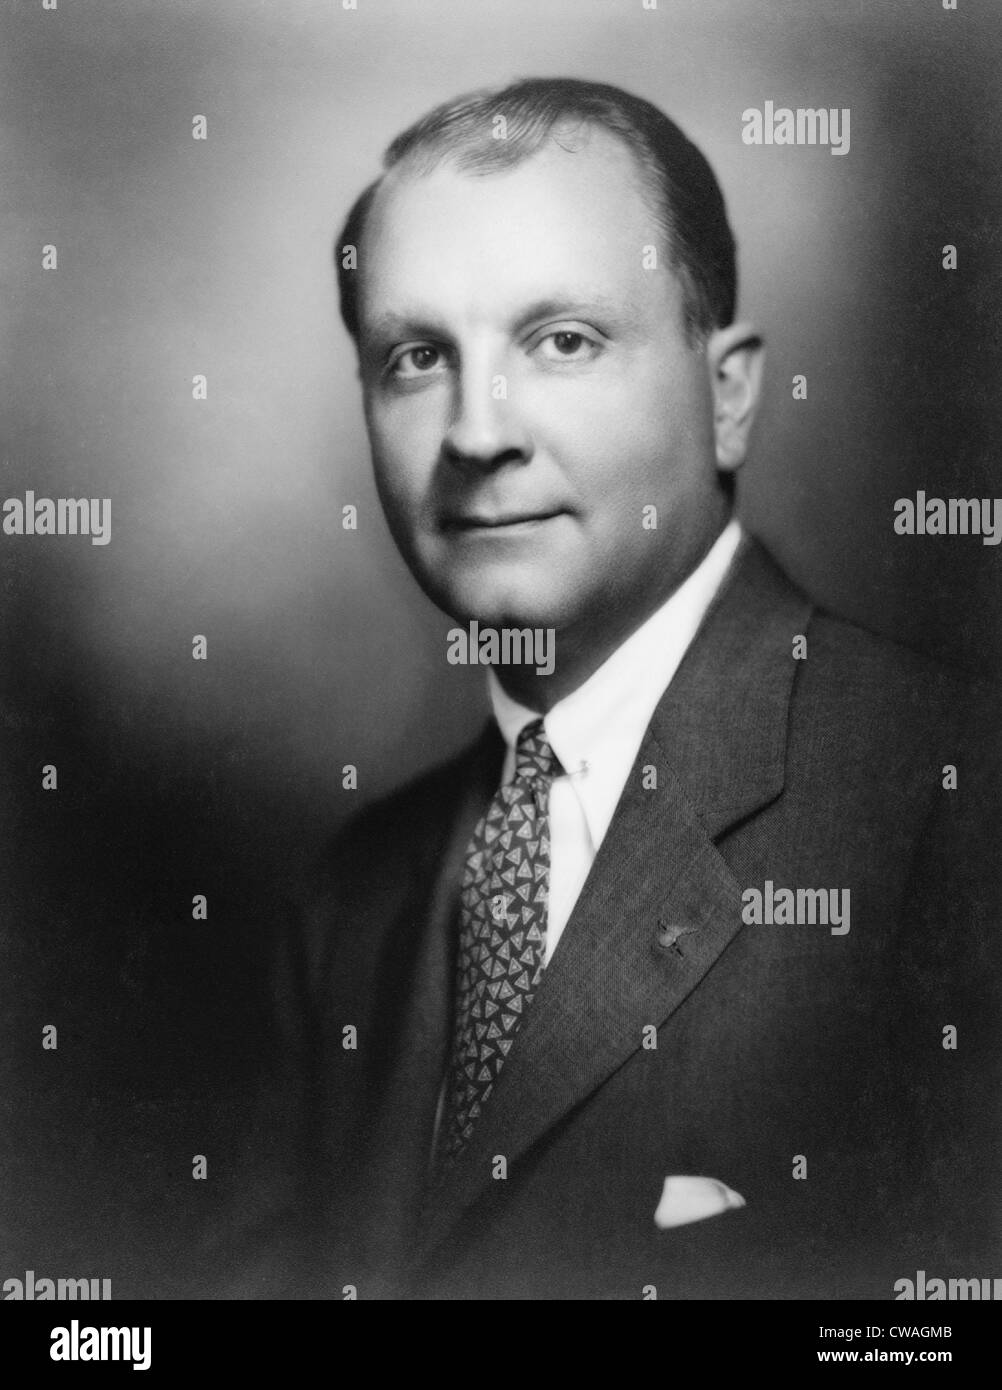 Juan T. Trippe, pioneer of commercial aviation and founder of Pan-American Airways, in 1927. - Stock Image